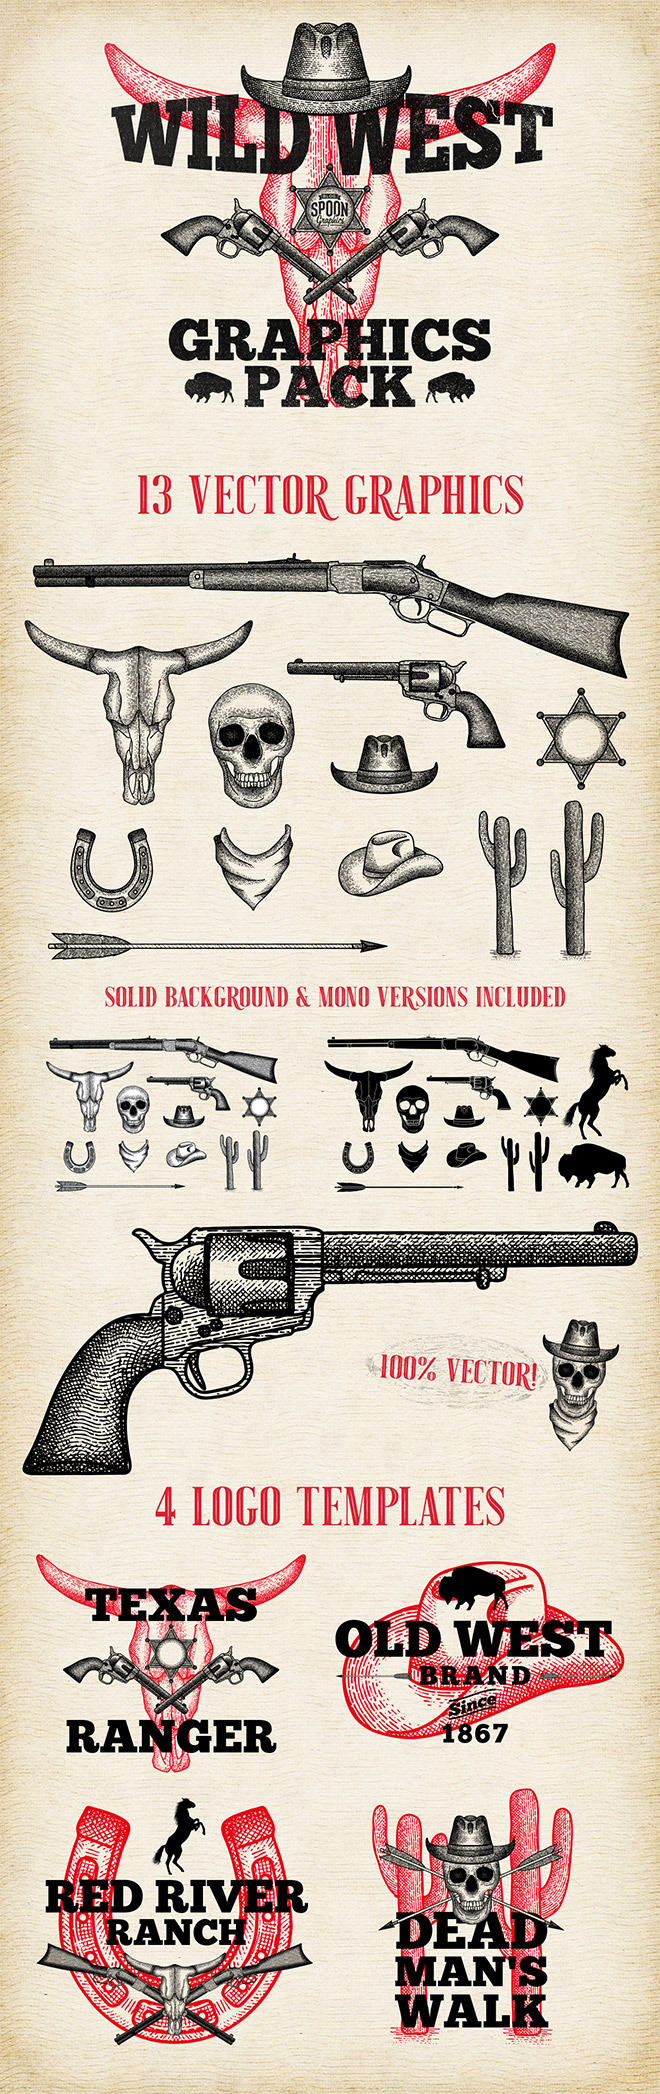 free wild west vector graphics logo templates pack